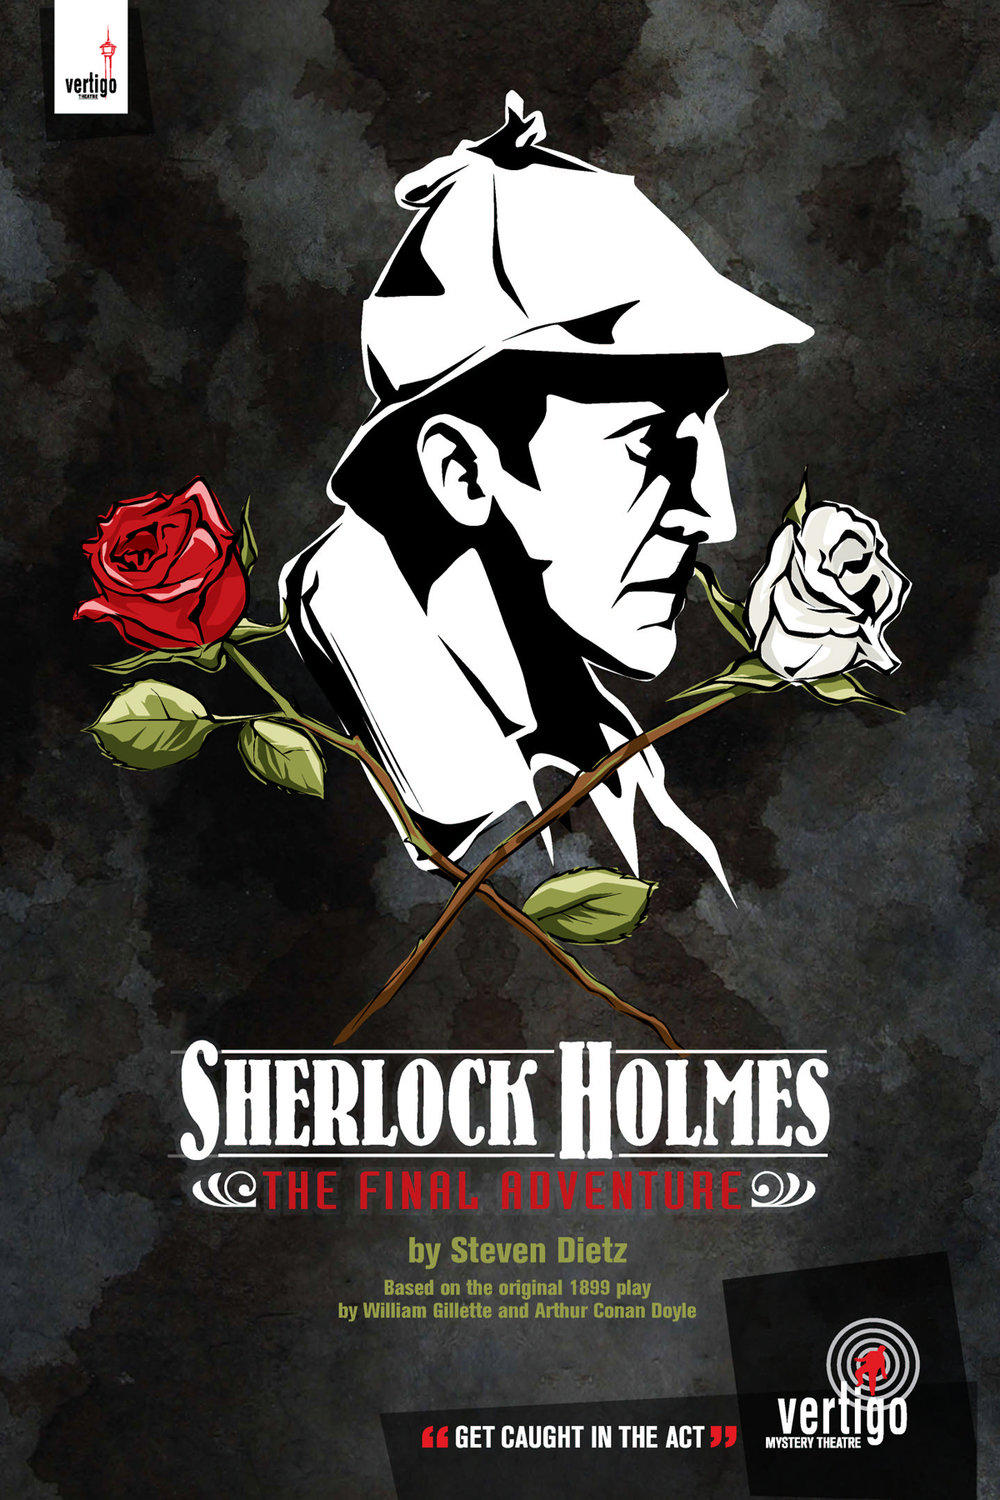 SHERLOCK HOLMES THE FINAL ADVENTURE